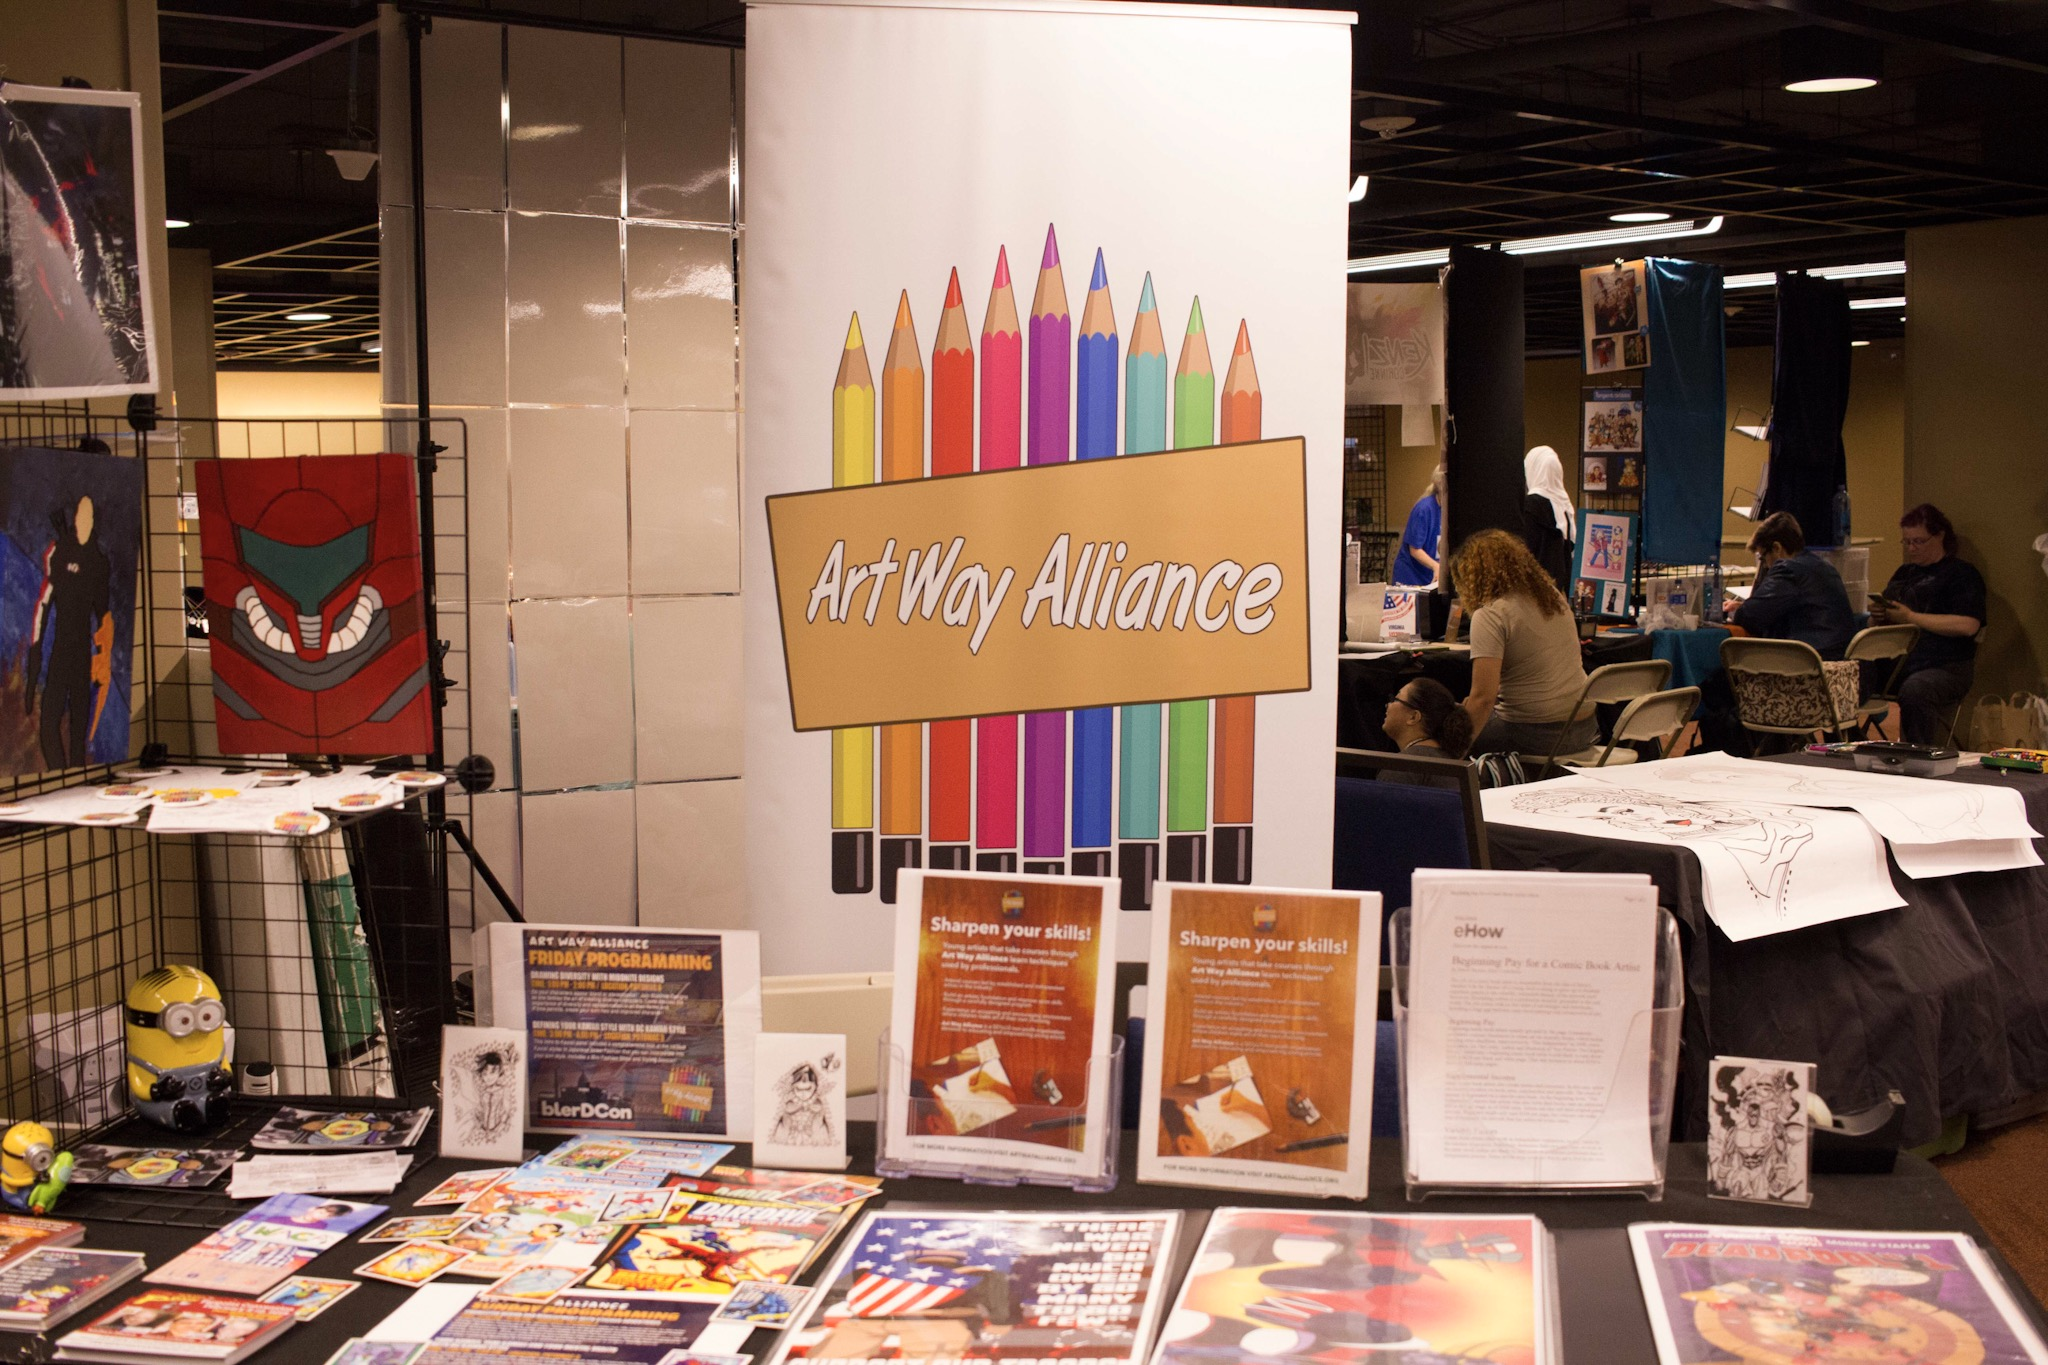 We've had the privilege of knowing about Artway Alliance and following their journey for quite some time. They are a non-profit that teaches kids how to create comic books, anime, and other illustrations to help stimulate and refine creativity at a young age.